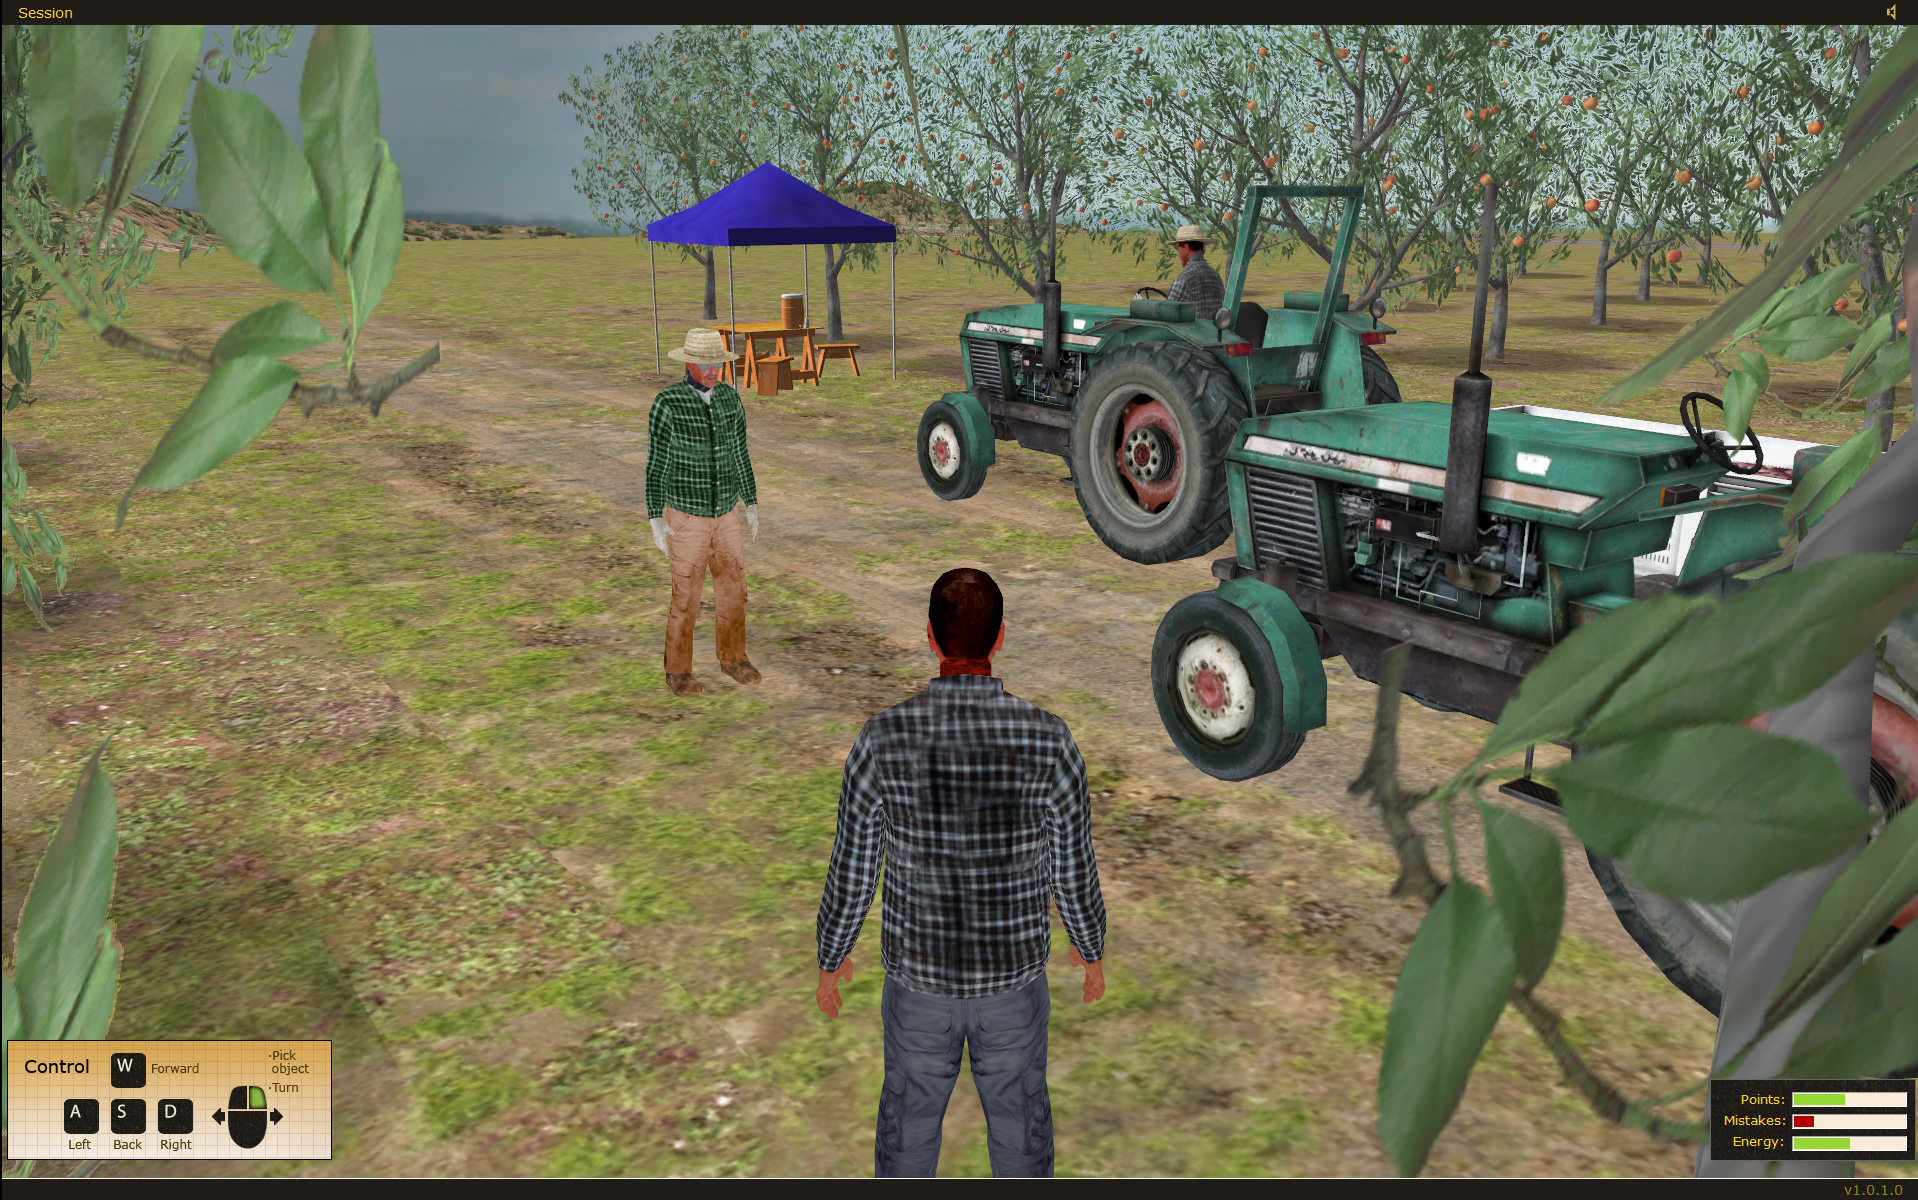 State-Compensation-Insurance-Fund-Tractor-Safety-Training-Simulator-Safety-Check-List